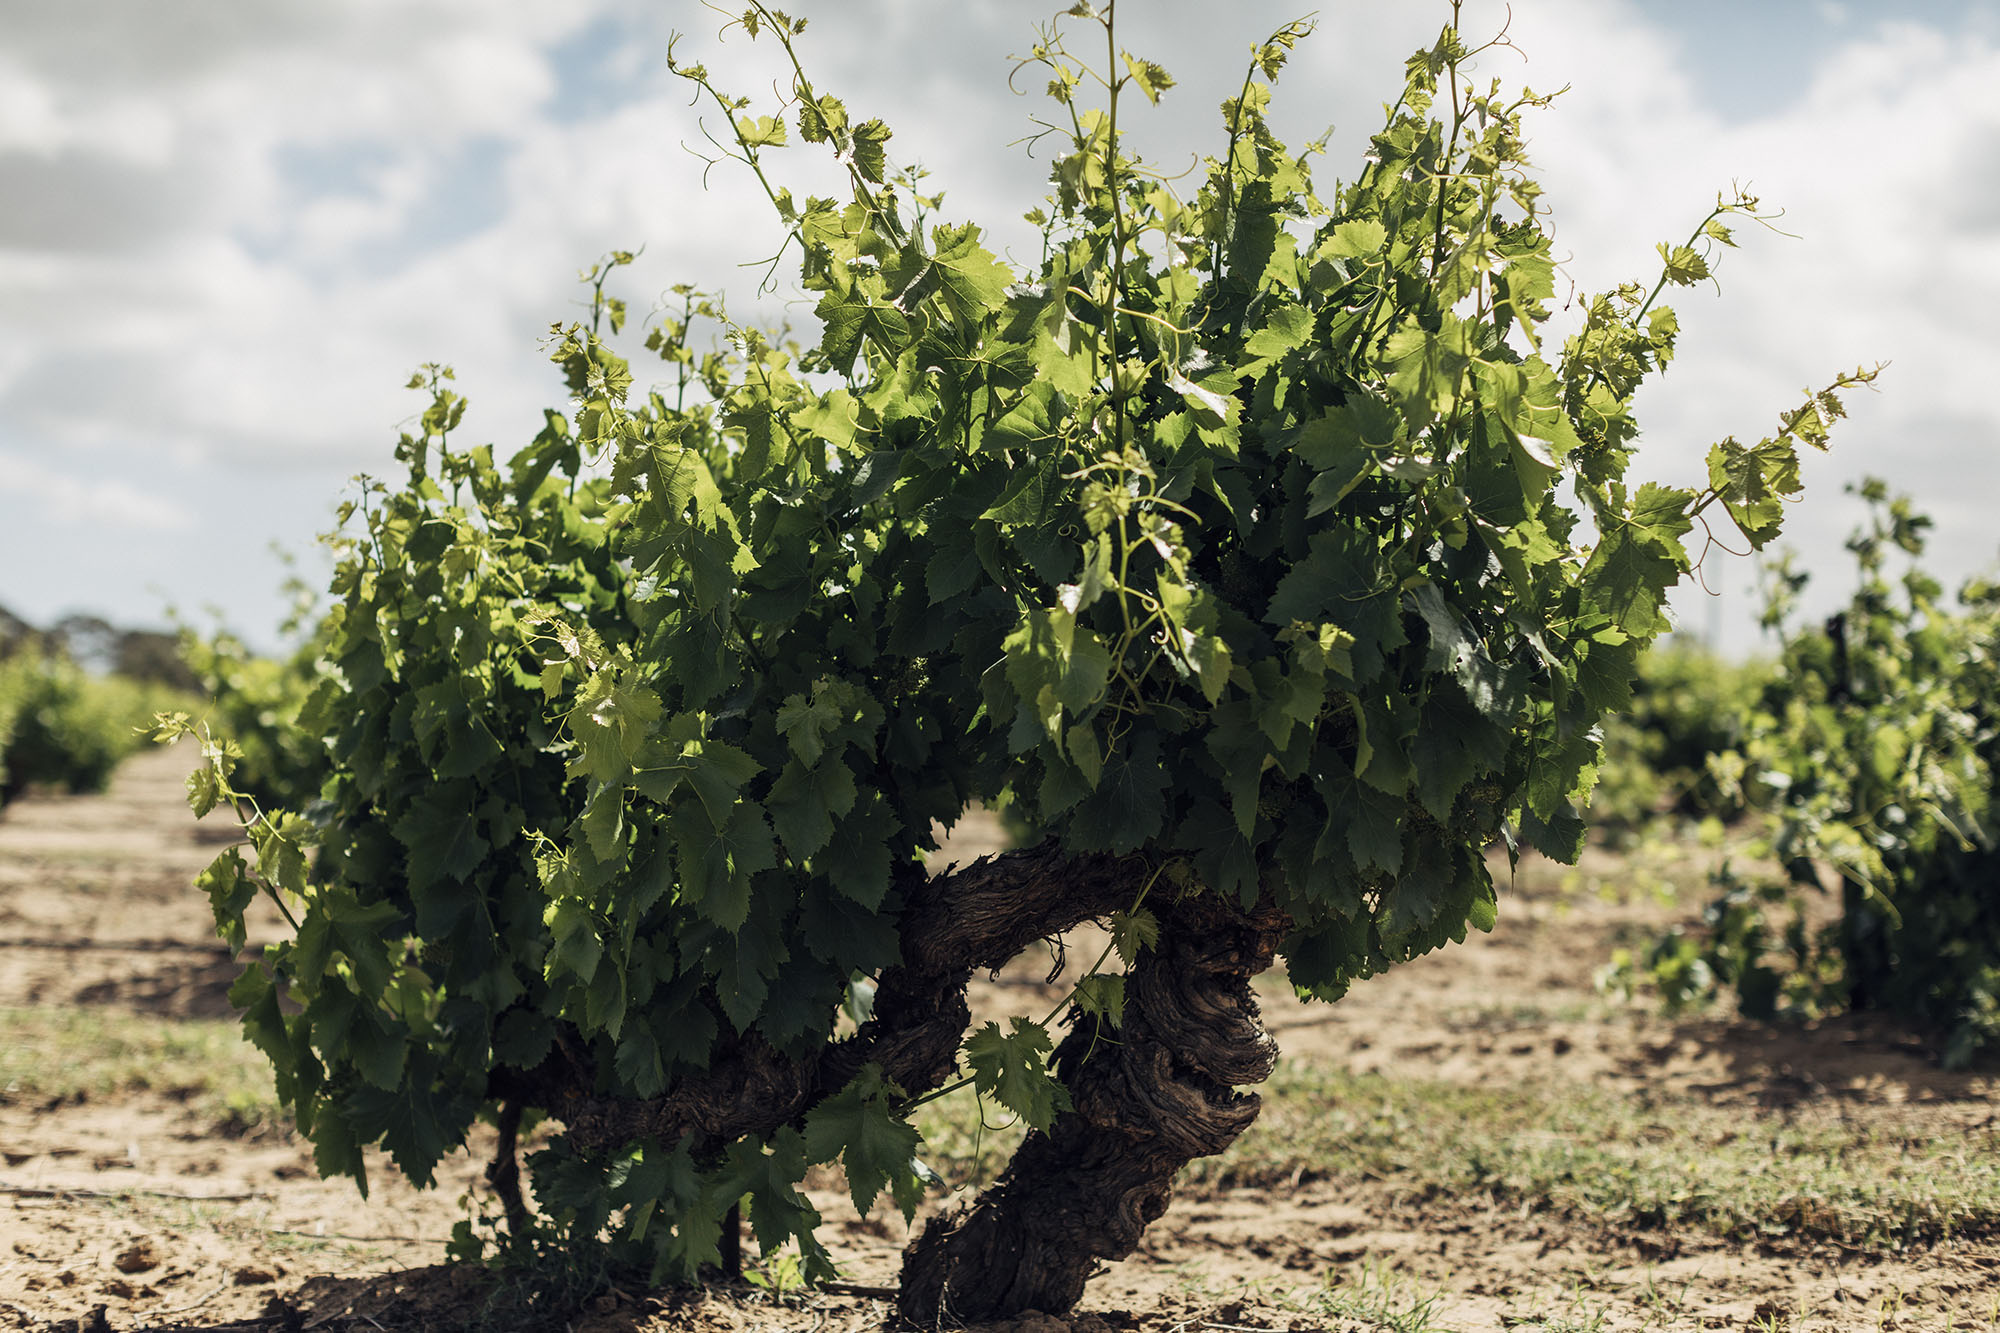 Cirillo Estates Wine Bush vine Grenache - planted in 1848 - the oldest, continuously producing Grenache vines in the world